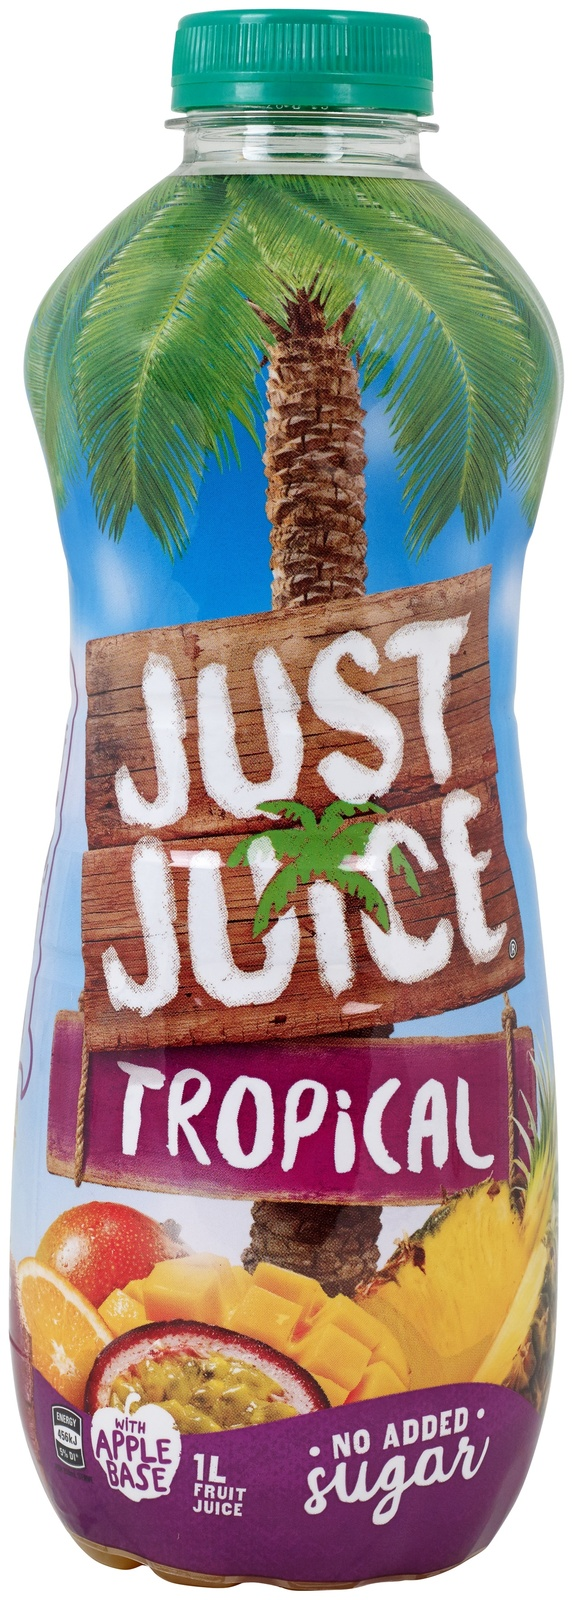 Just Juice: Tropical (12 x 1L) image